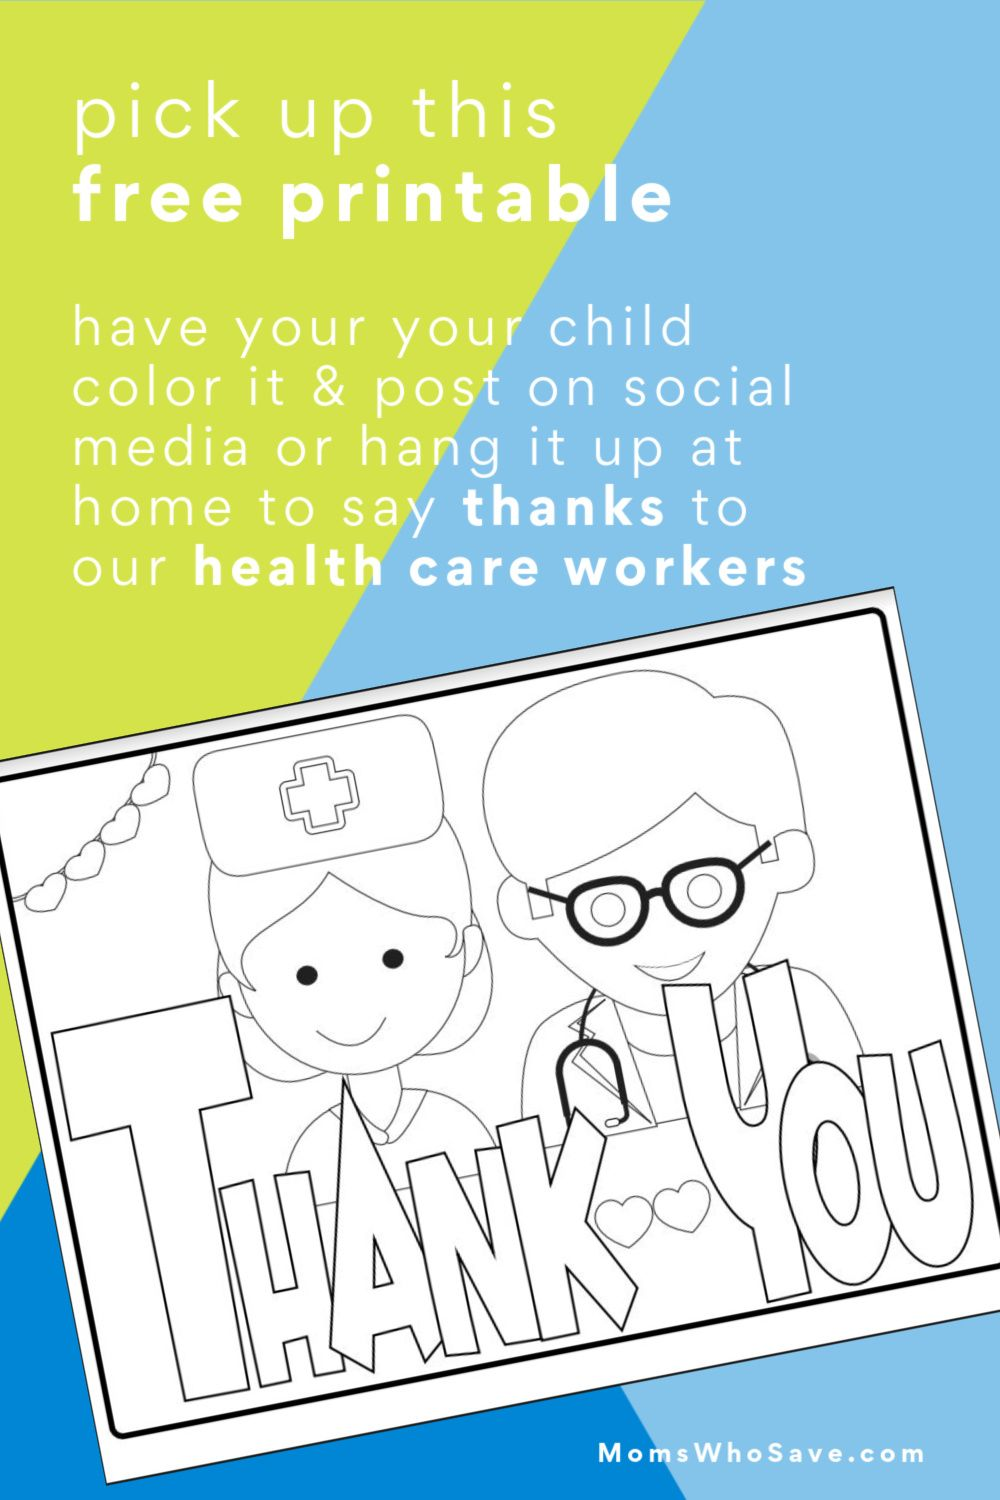 Free Kids Coloring Page Thank You Health Care Workers Momswhosave Com In 2020 Free Kids Coloring Pages Coloring Pages For Kids Coloring For Kids